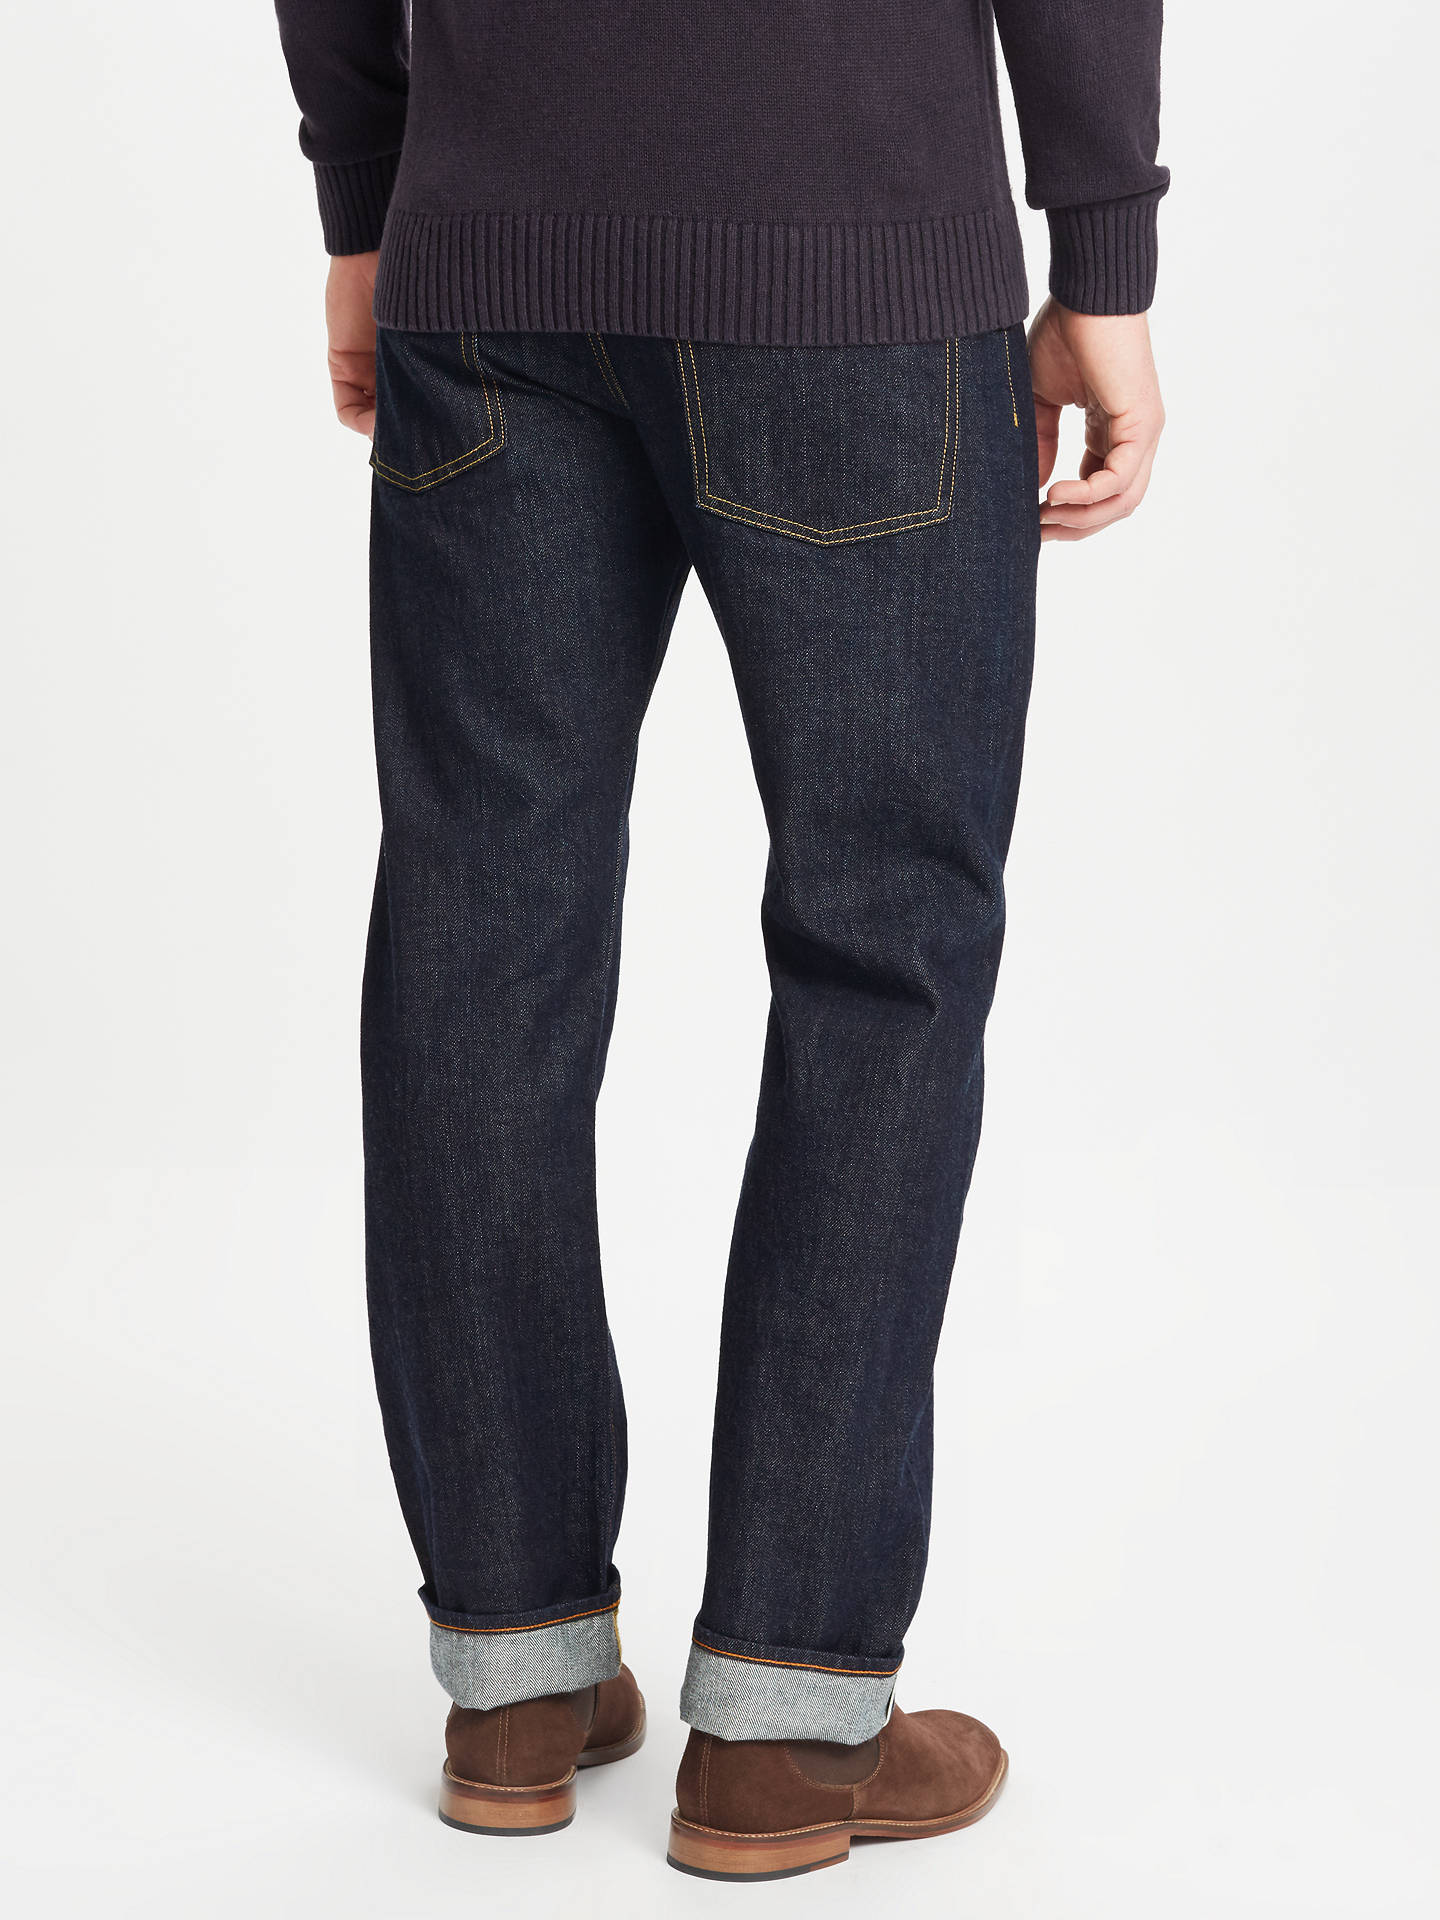 Buy JOHN LEWIS & Co. Washed Japanese Selvedge Denim Jeans, Blue, 30R Online at johnlewis.com